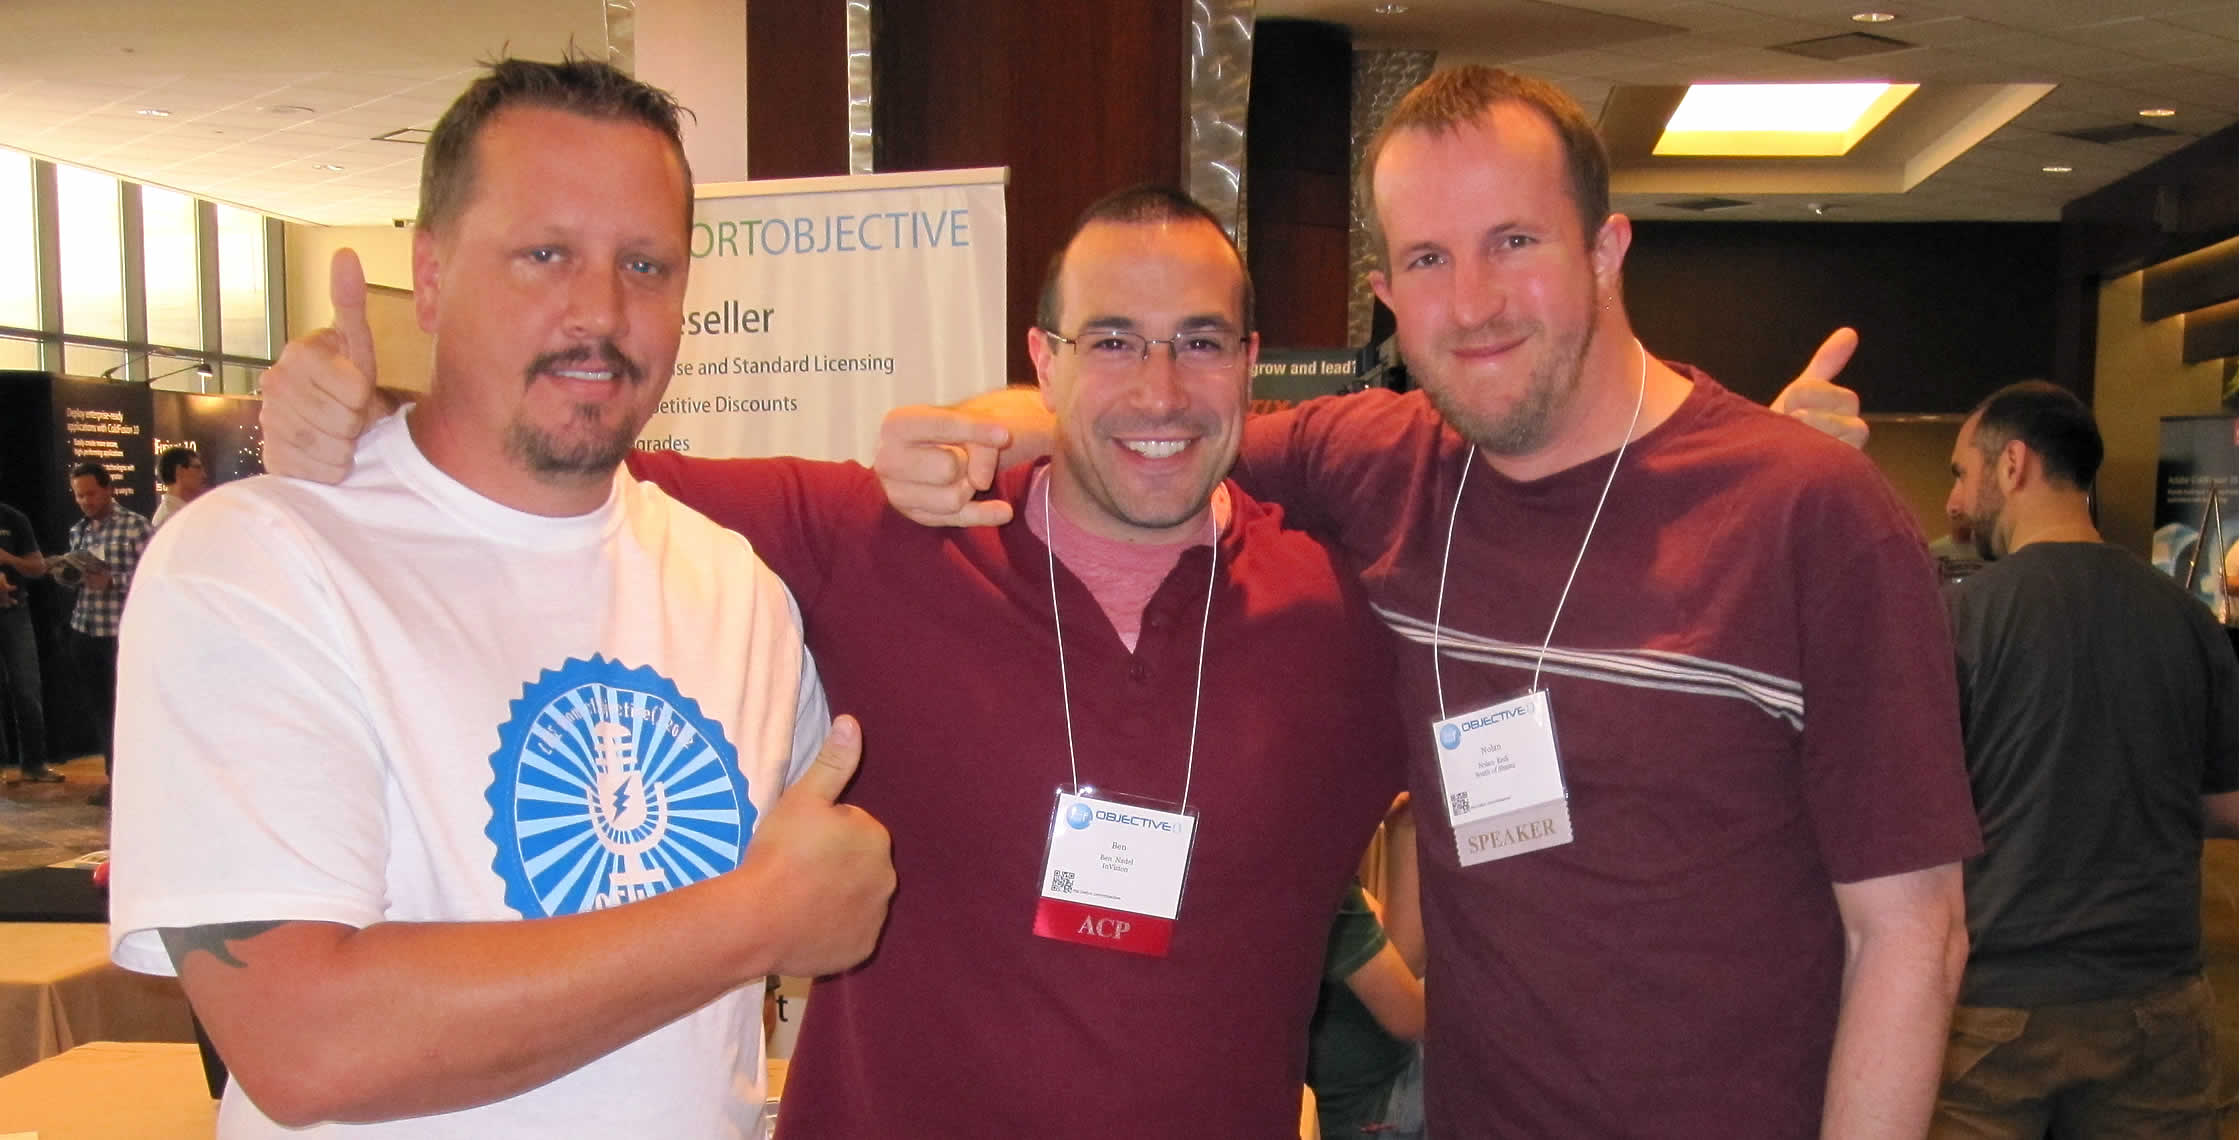 Ben Nadel at cf.Objective() 2012 (Minneapolis, MN) with: Matt Graf and Nolan Erck